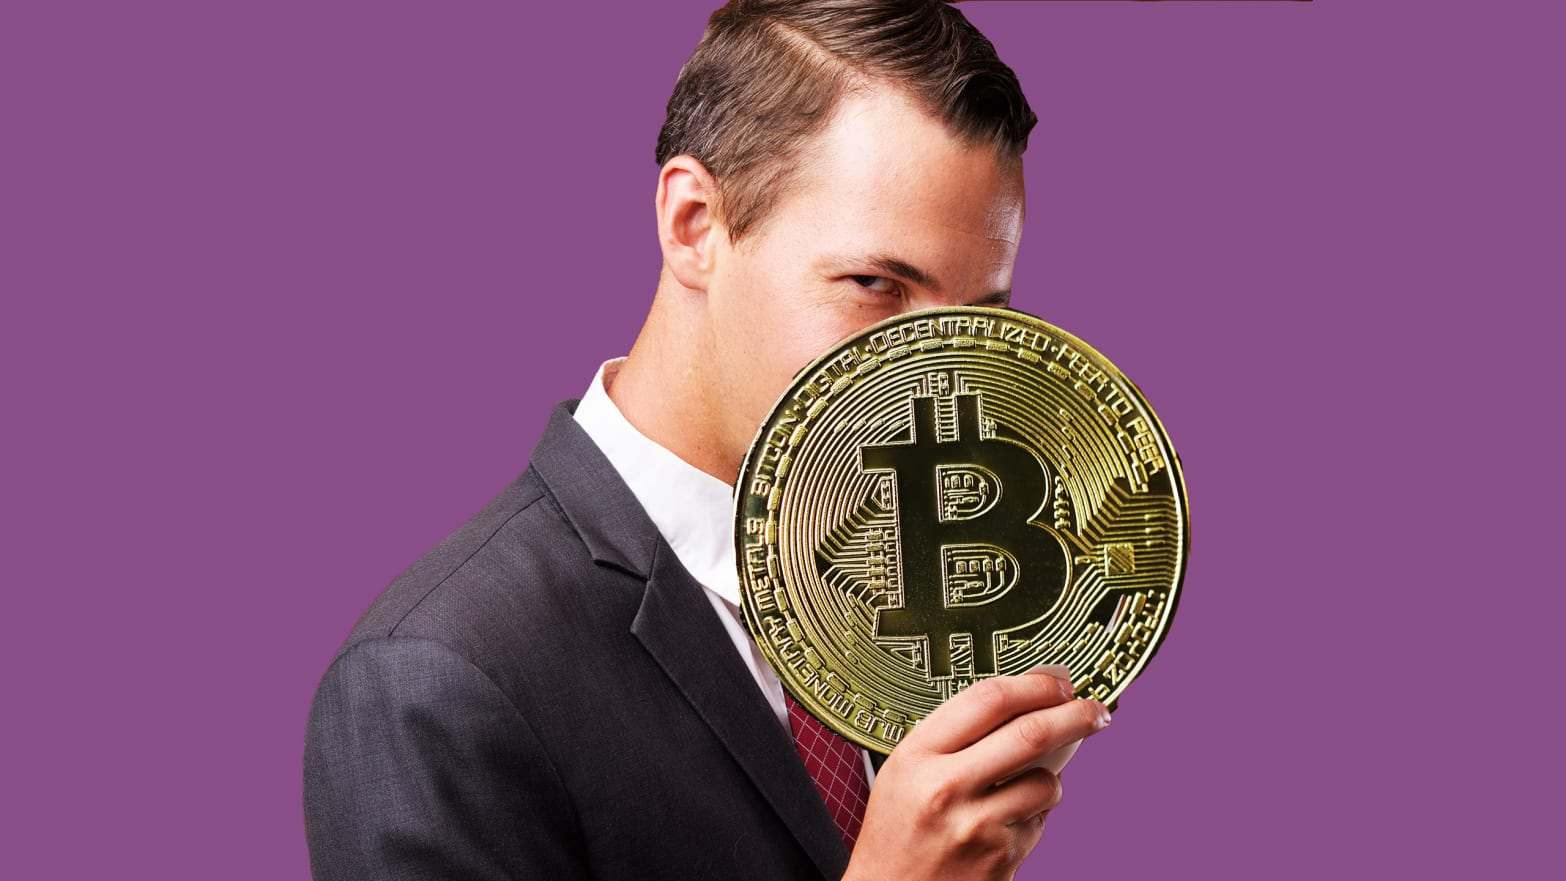 Men's Rights Activists: Use Bitcoin to Hide Money From Your Future